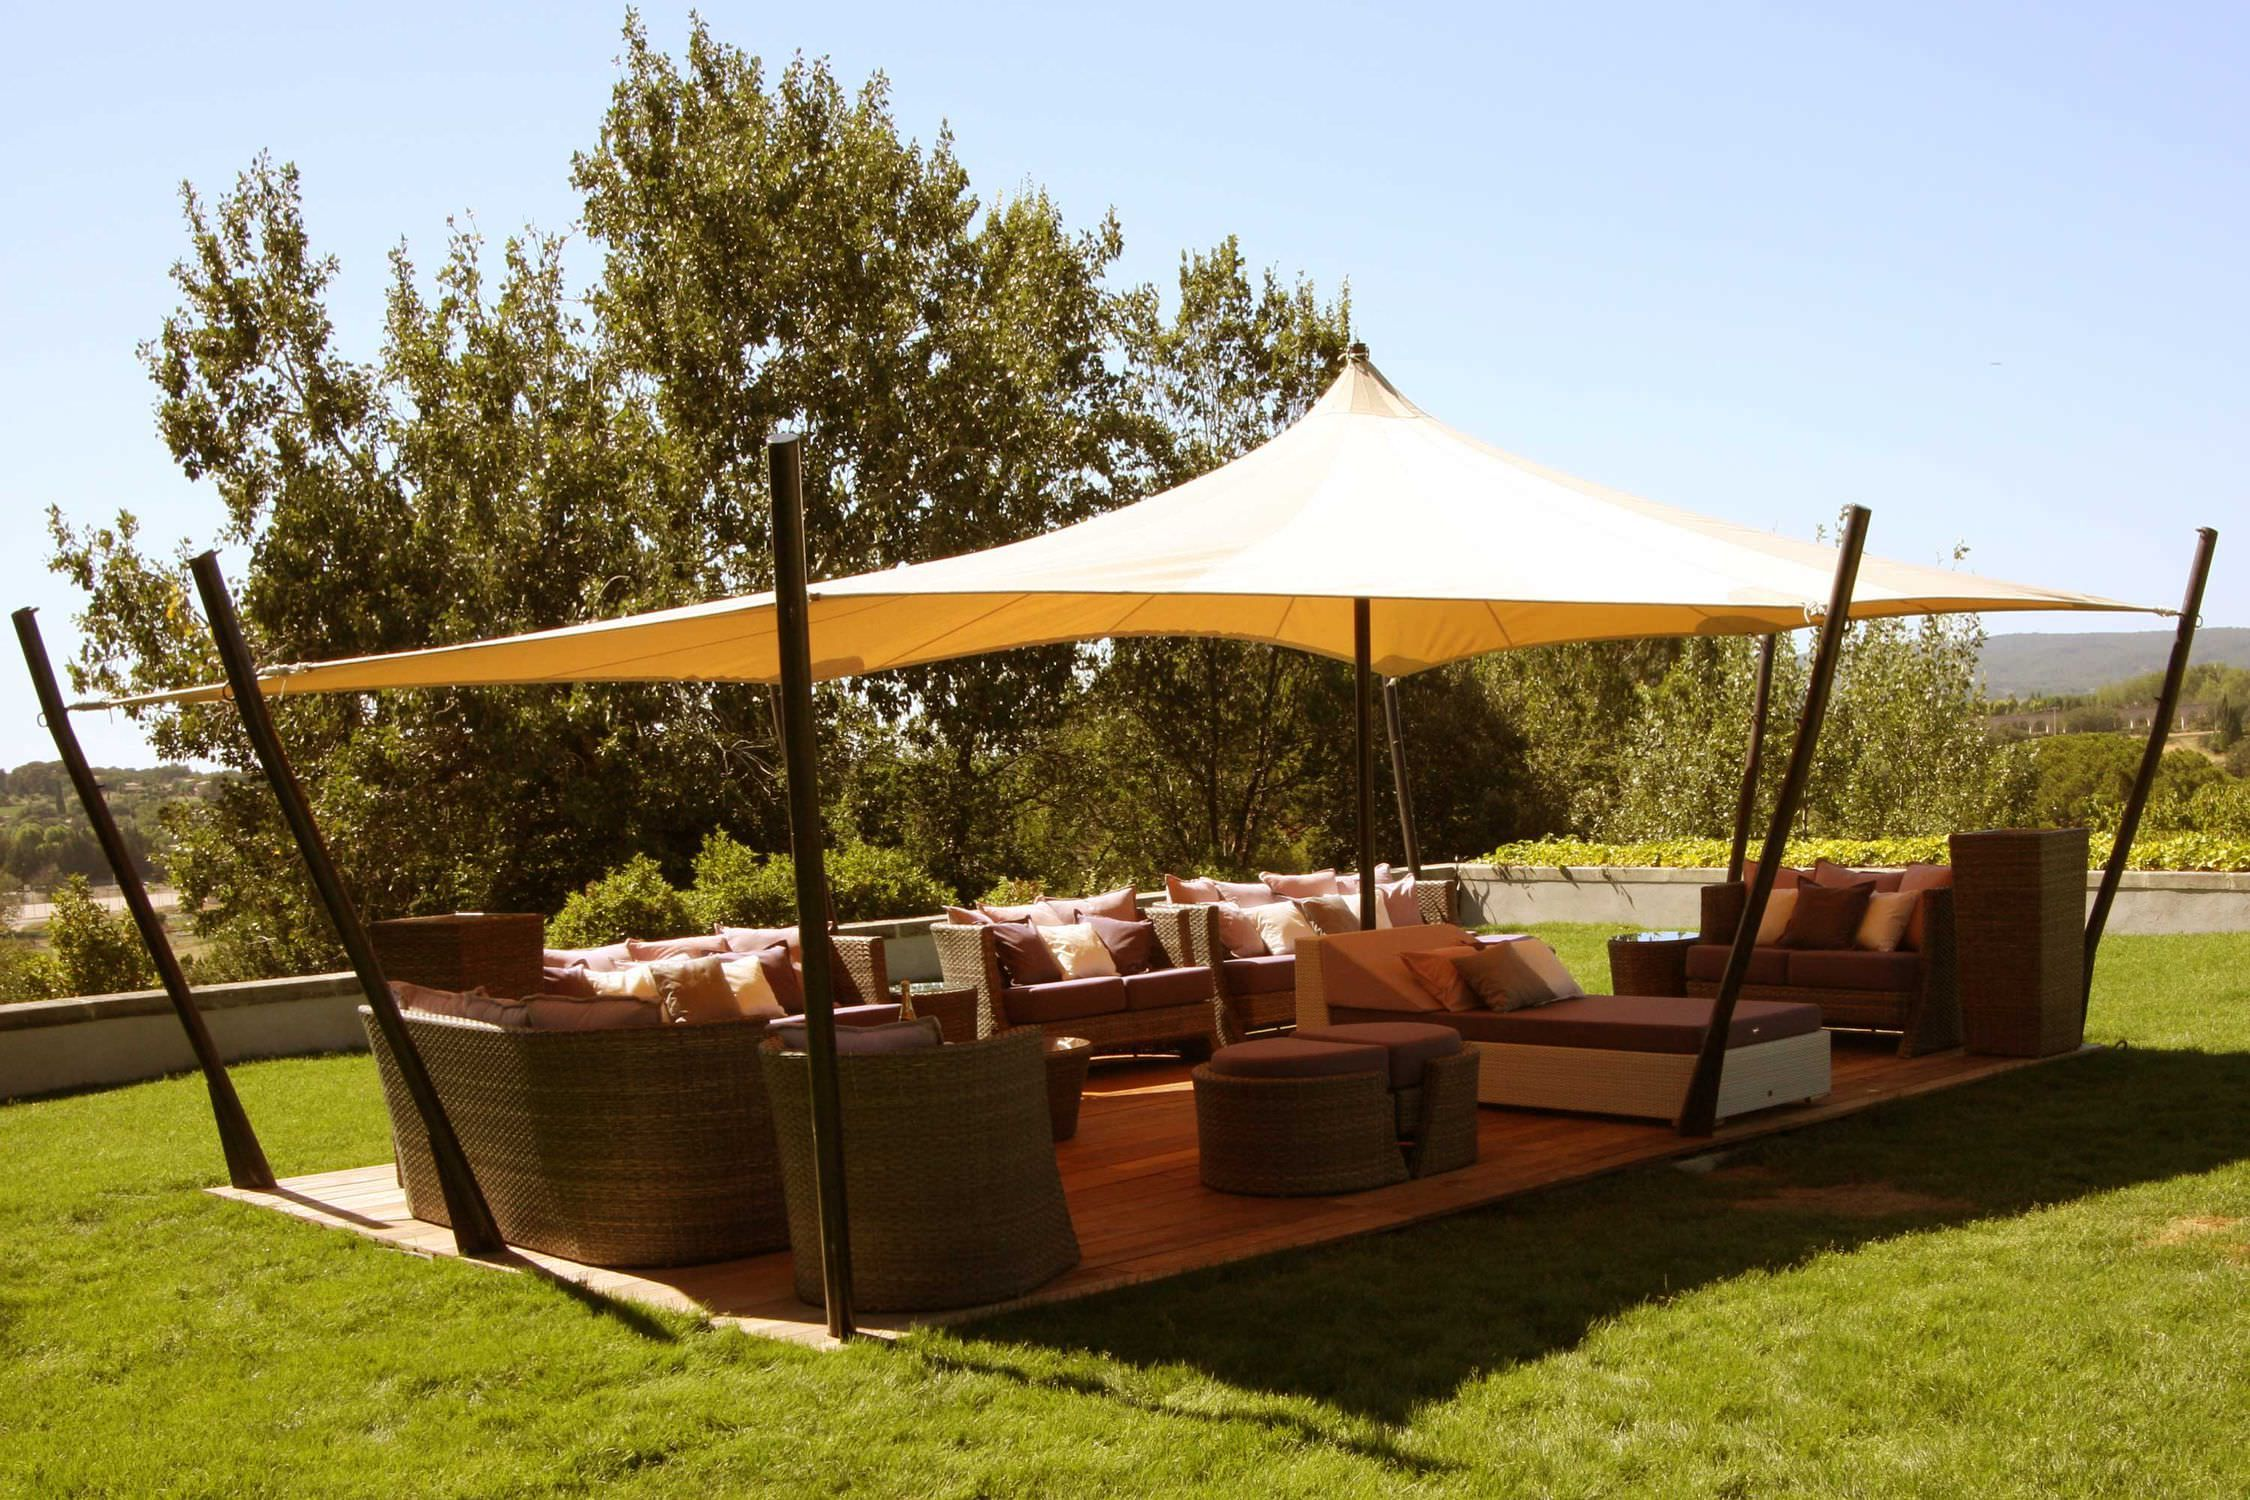 sail gazebo | wooden gazebo / fabric coverings tente touareg, Moderne